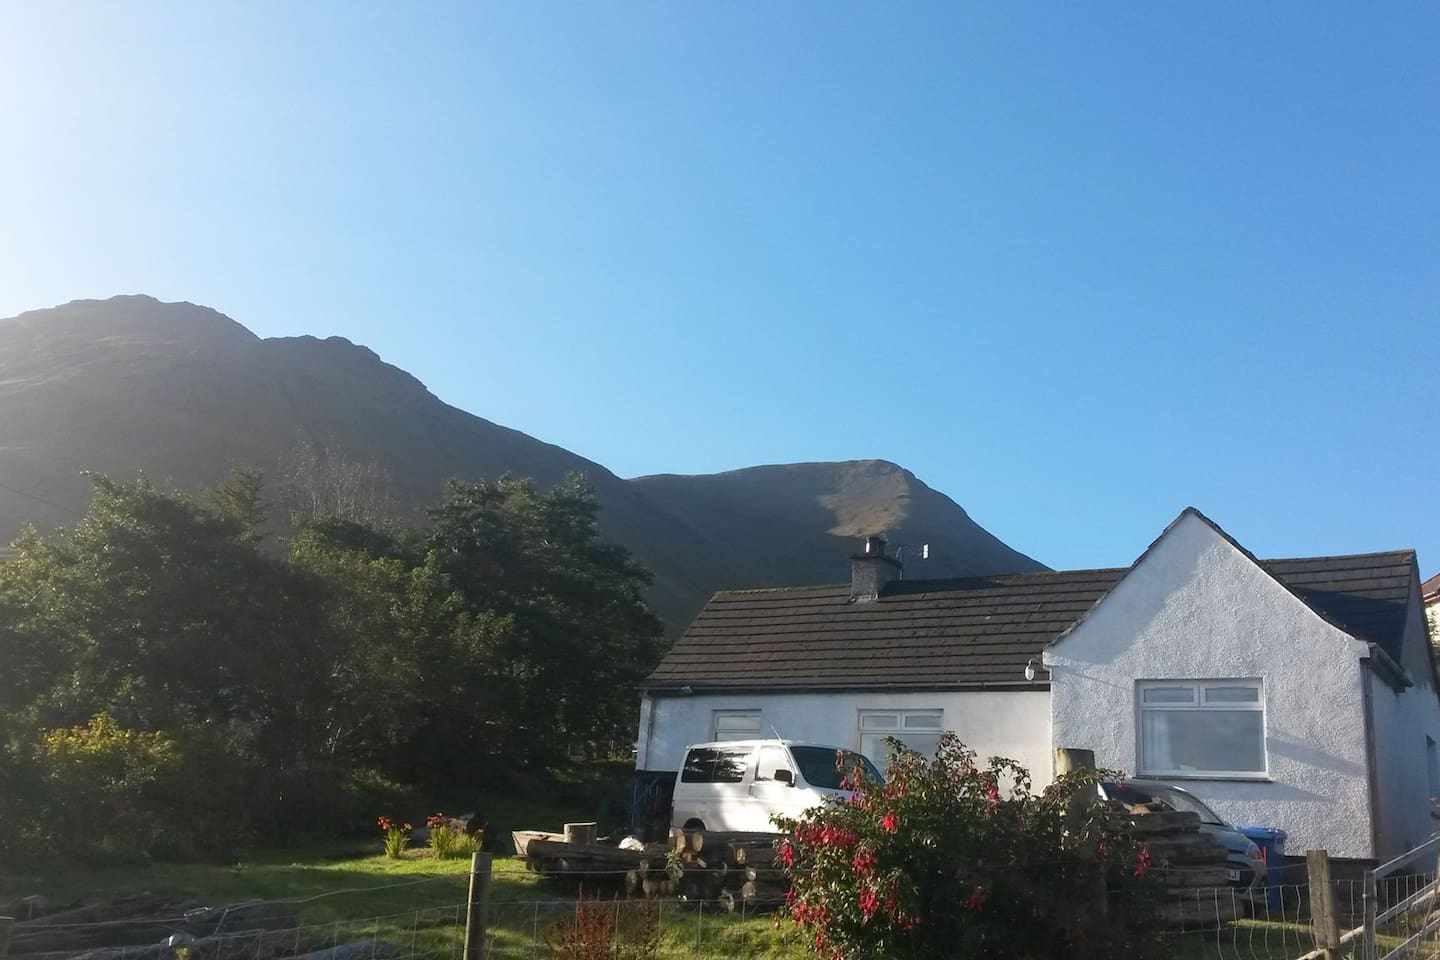 Fo Glamaig - Sea View Home Stay. I look forward to welcoming you soon to Skye.